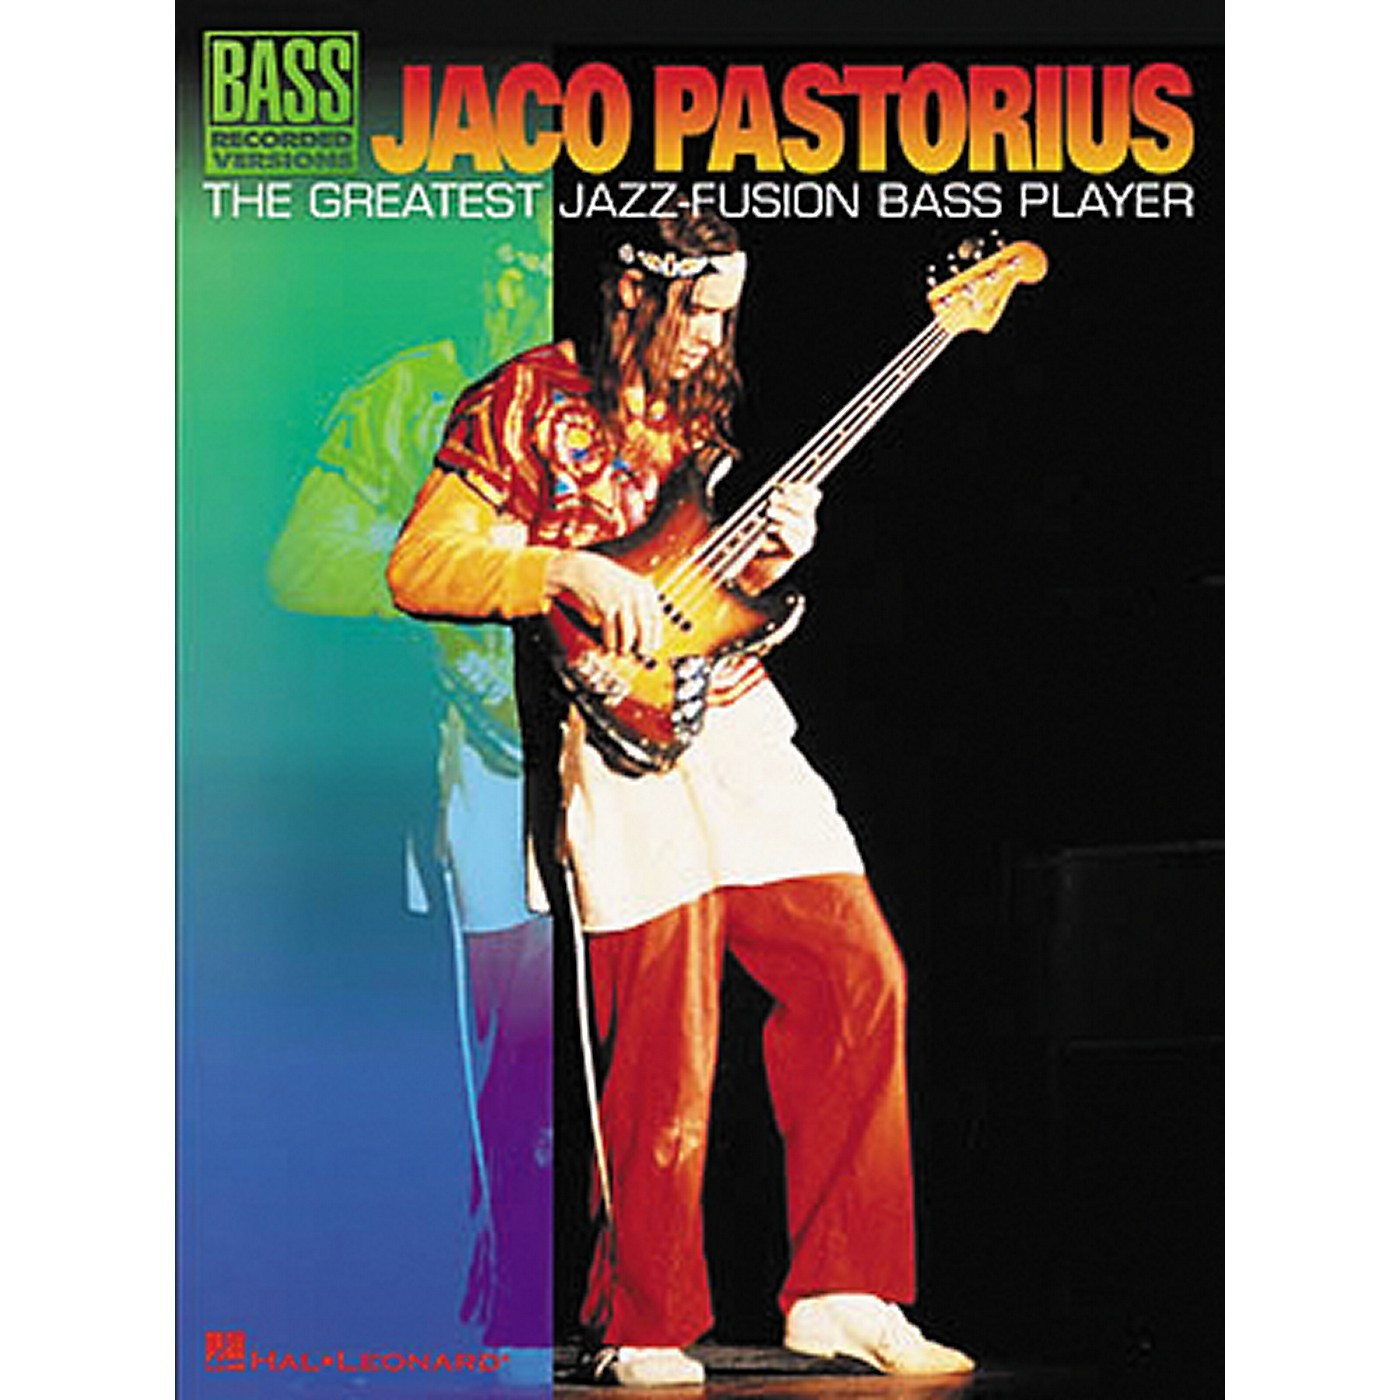 Hal Leonard Jaco Pastorius - The Greatest Jazz-Fusion Bass Player Book thumbnail